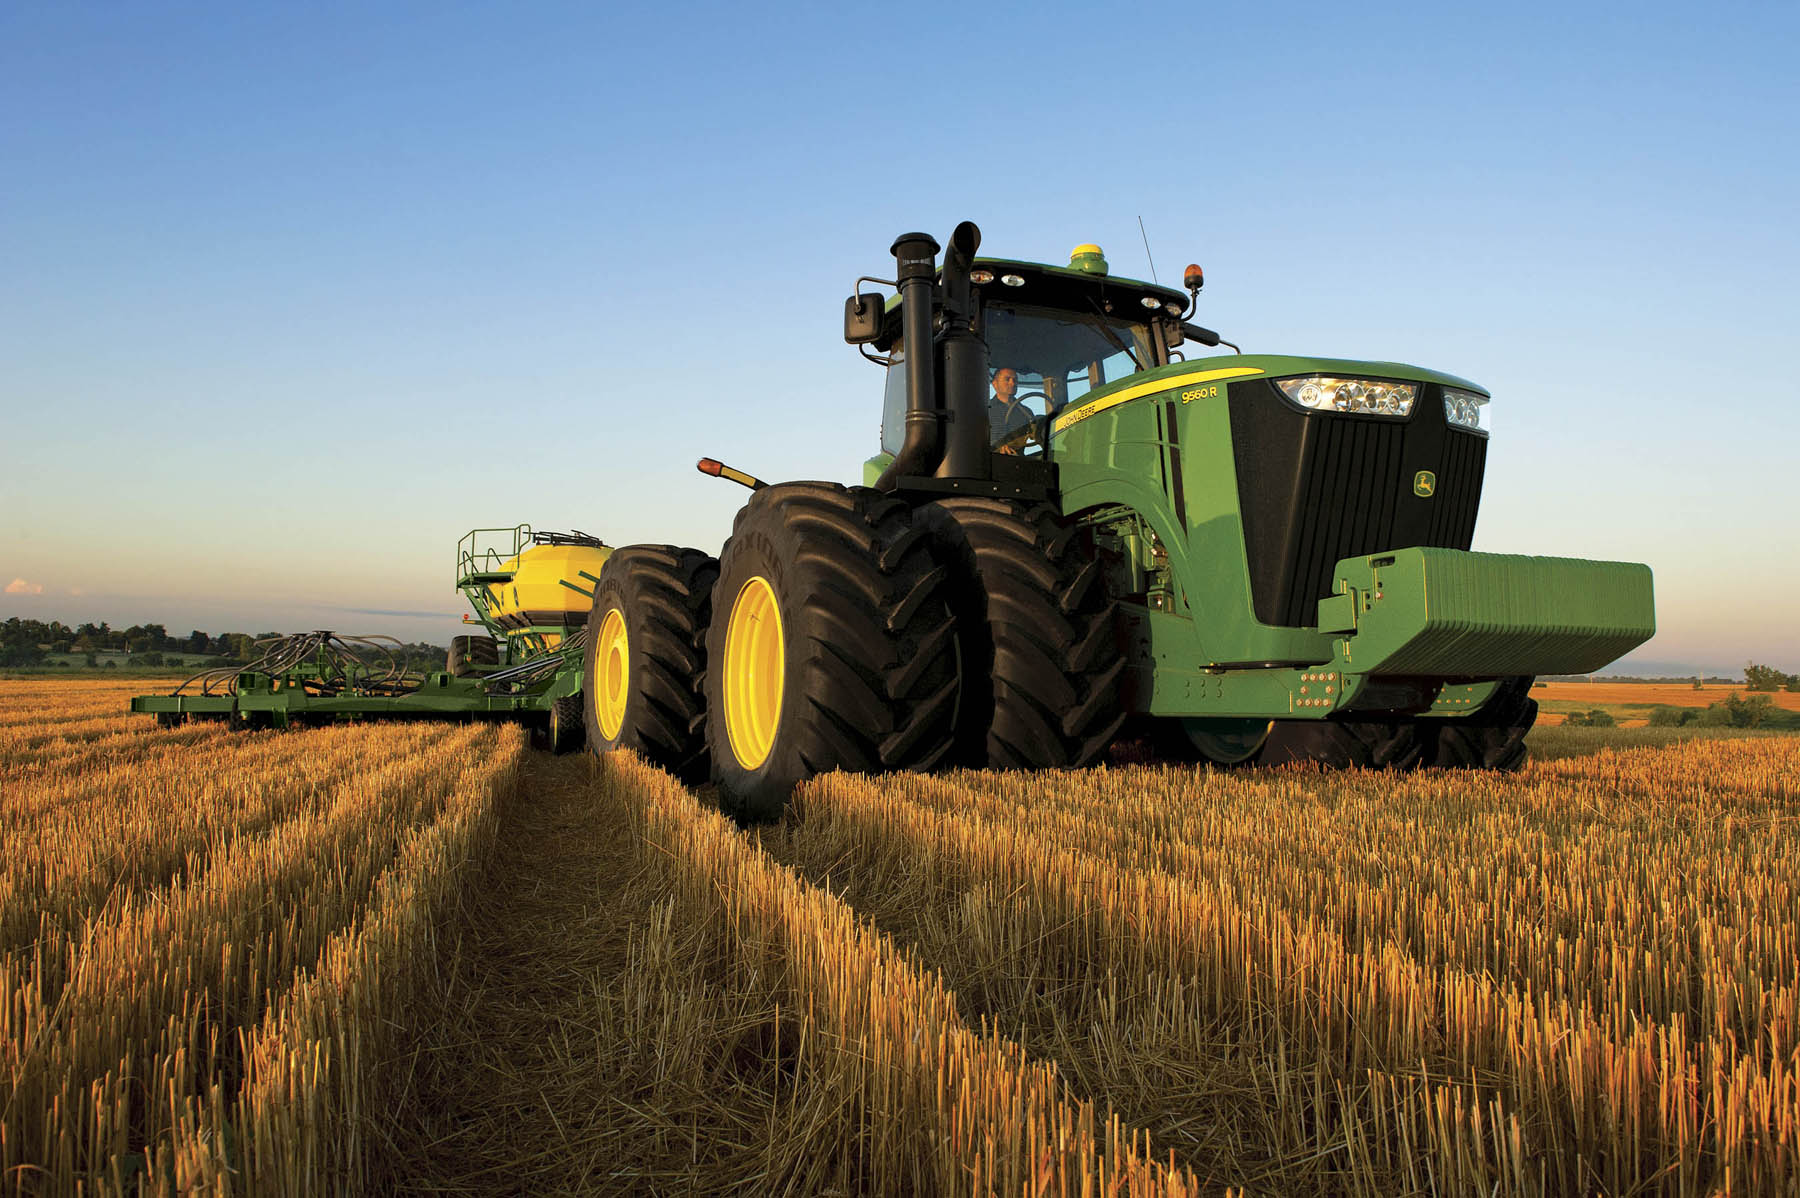 operations management john deere case study Problems being faced by management be used to increase and enhance company's operations analysis of the john deere and complex parts inc case study:.